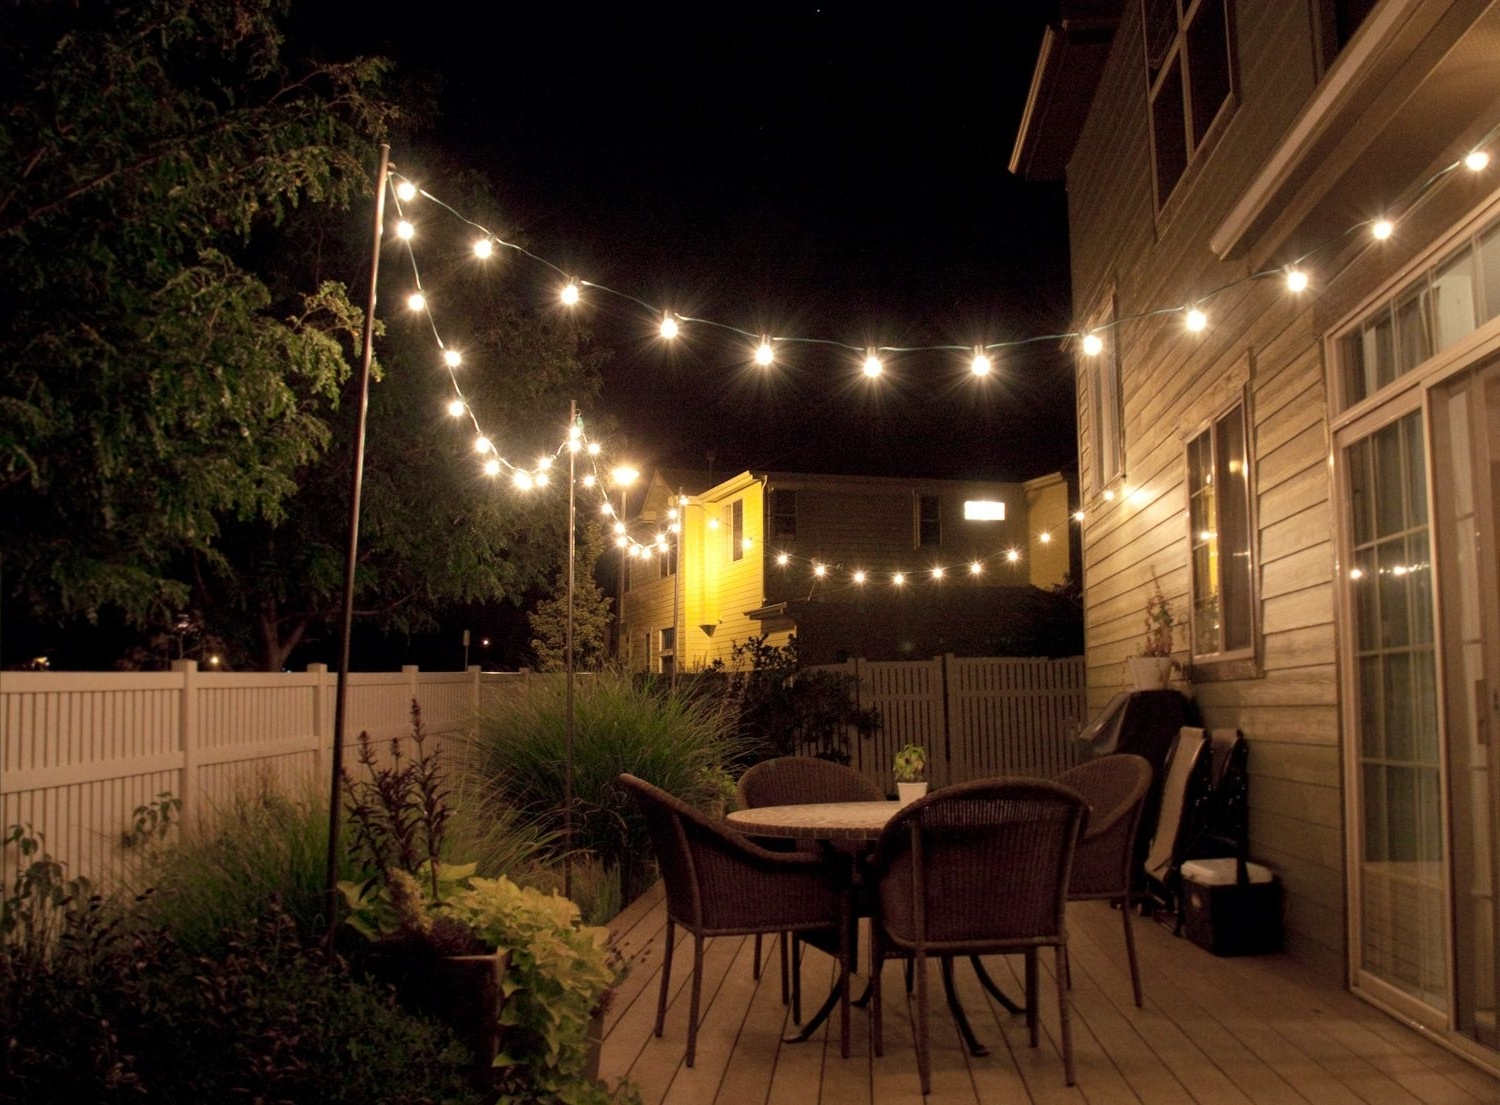 Commercial Outdoor Hanging Lights Within Popular How To Make Inexpensive Poles To Hang String Lights On – Café Style (View 9 of 20)